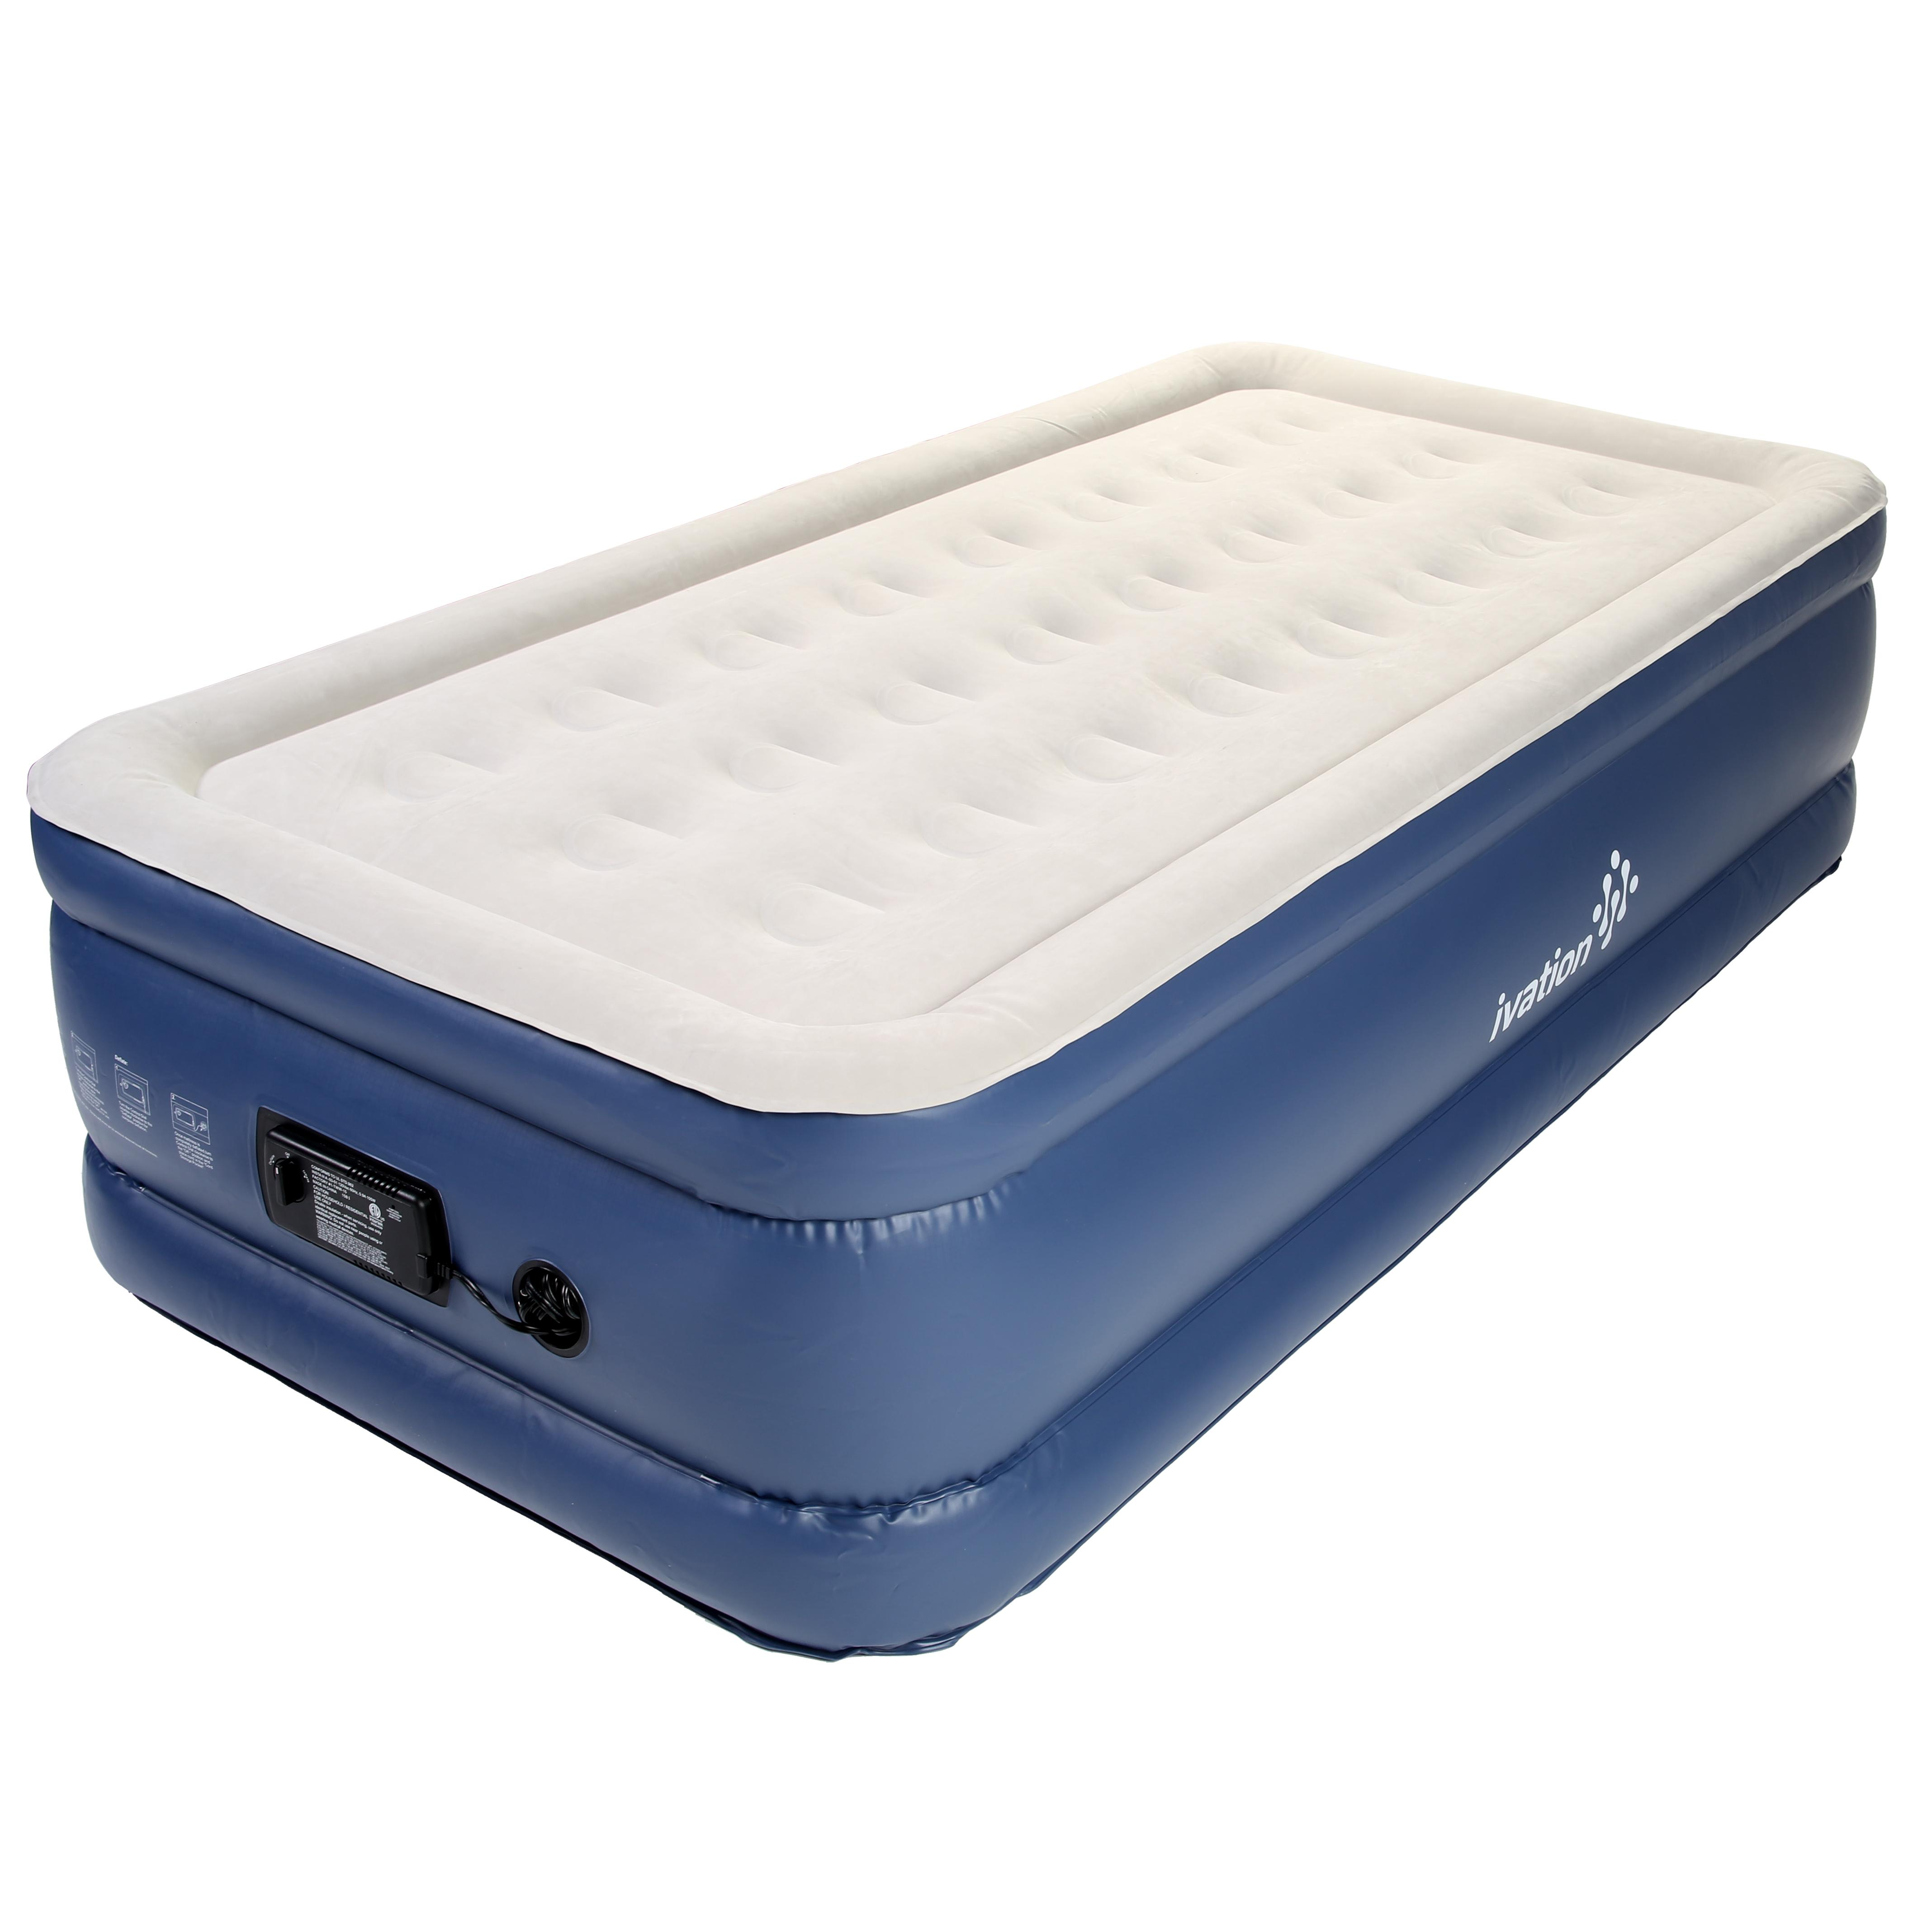 Ivation Inflatable Air Bed  Double Height Air Coil Mattress Construction with B